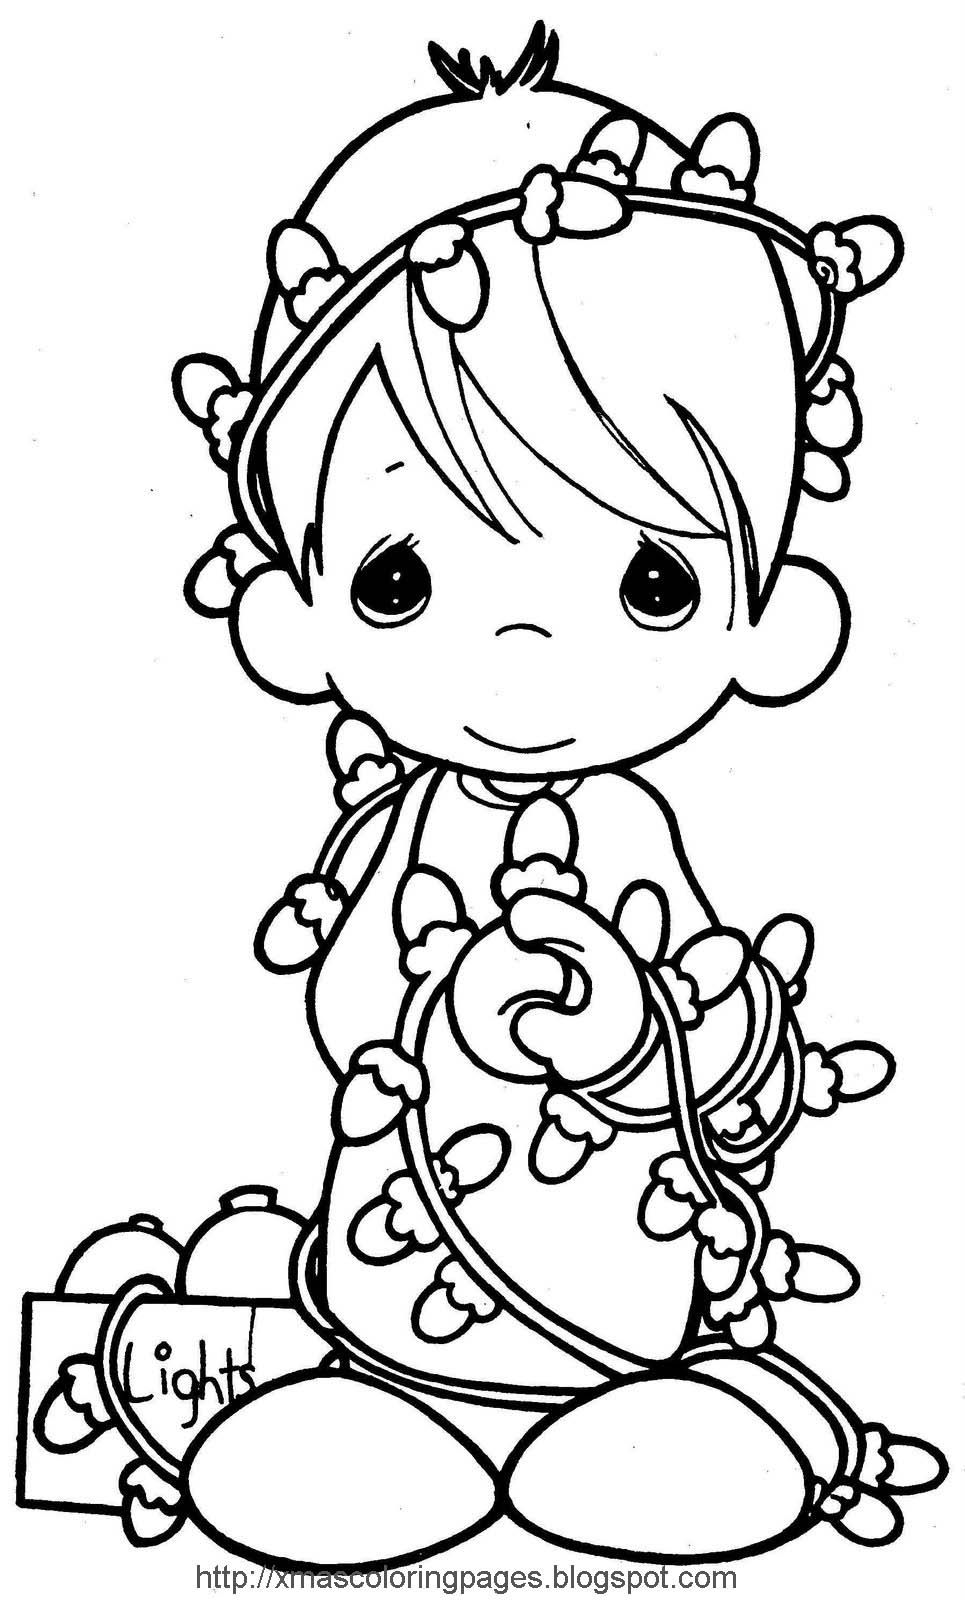 Xmas Coloring Pages With XMAS COLORING PAGES ANGEL PAGE Color Sheets Pinterest